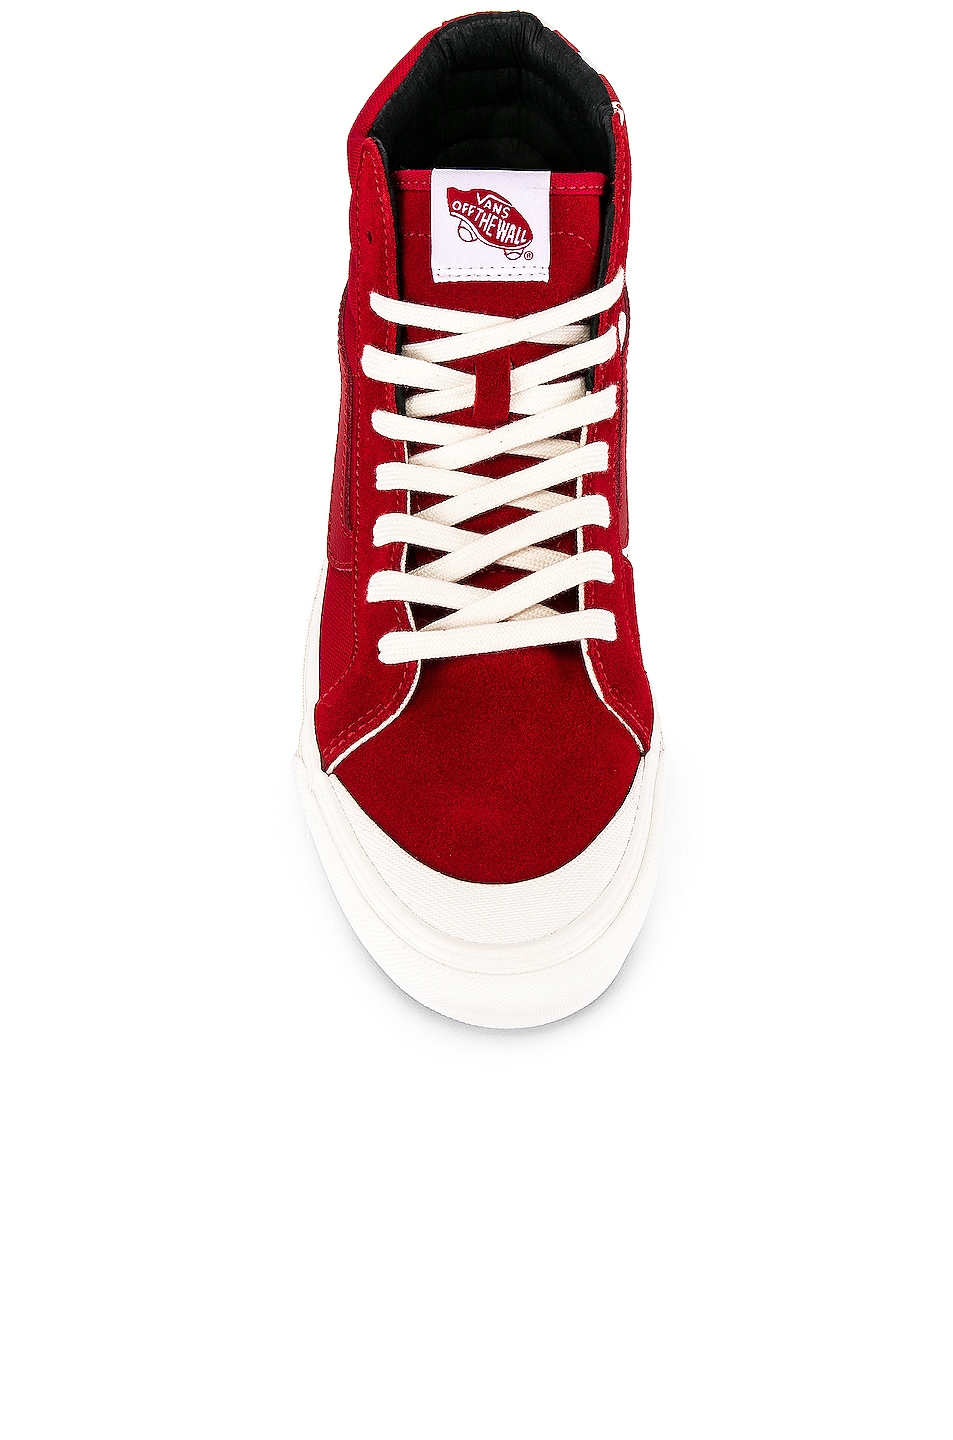 Image 4 of Vans Vault OG Style 138 LX in Racing Red & Checkerboard